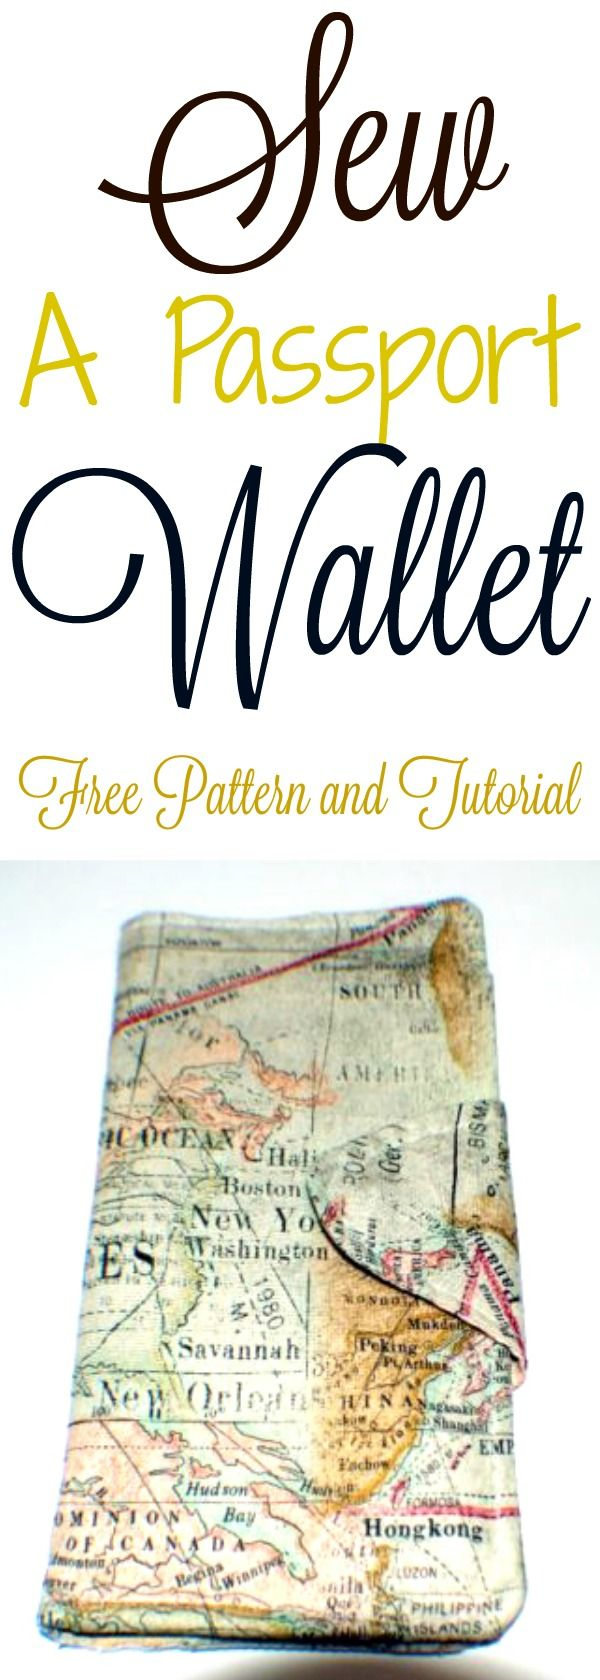 Sew a passport wallet.  Free pattern and tutorial. #passport #passprtwallet #sew #pattern #tutorial